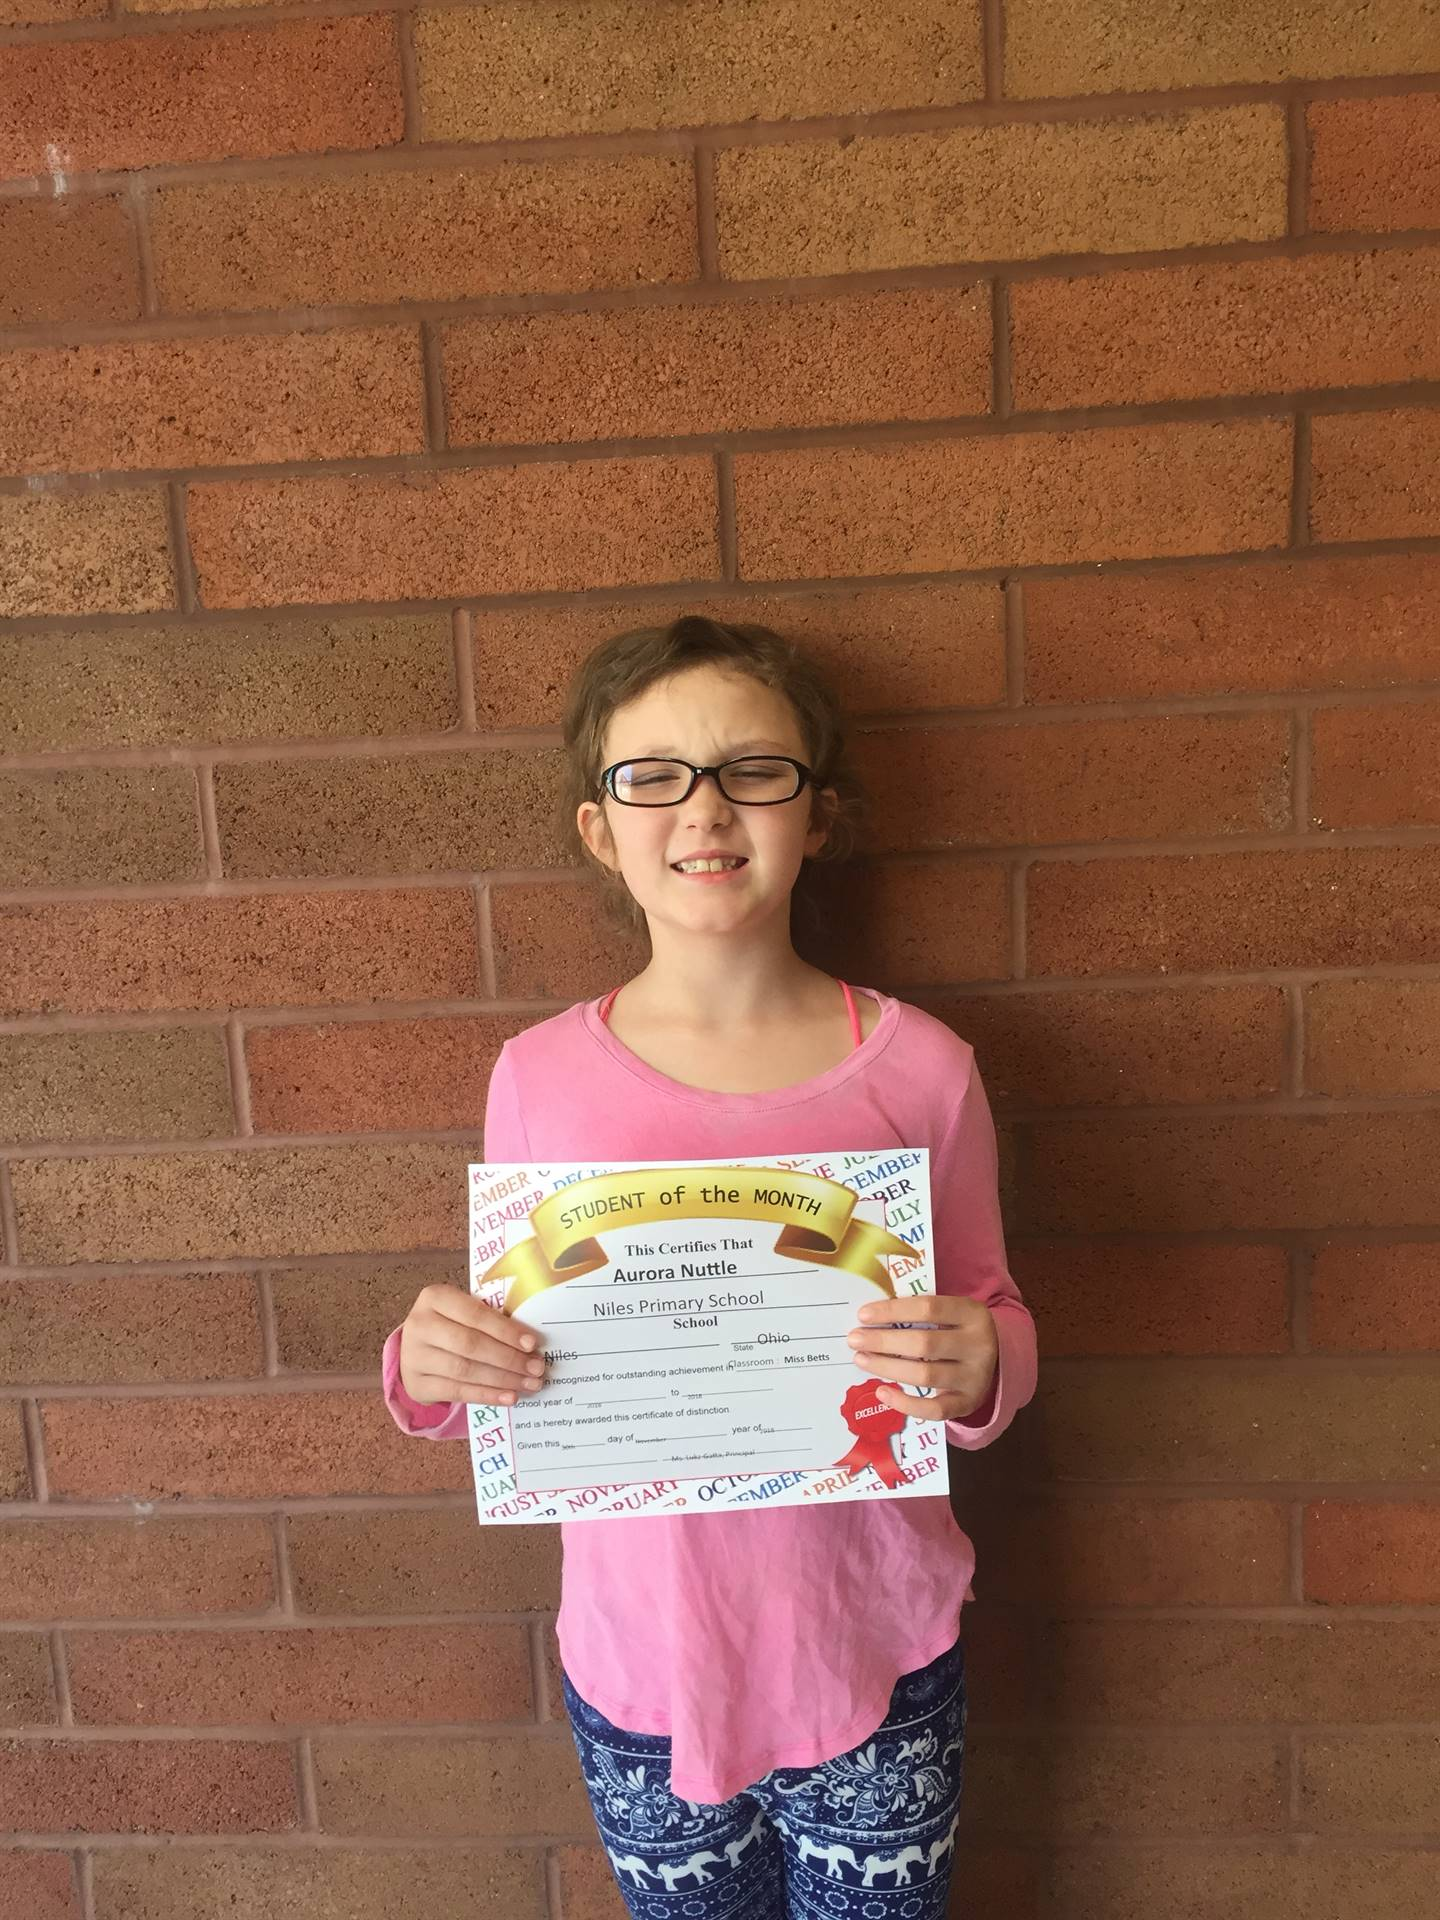 Miss Betts class, November 2017 Student of the Month